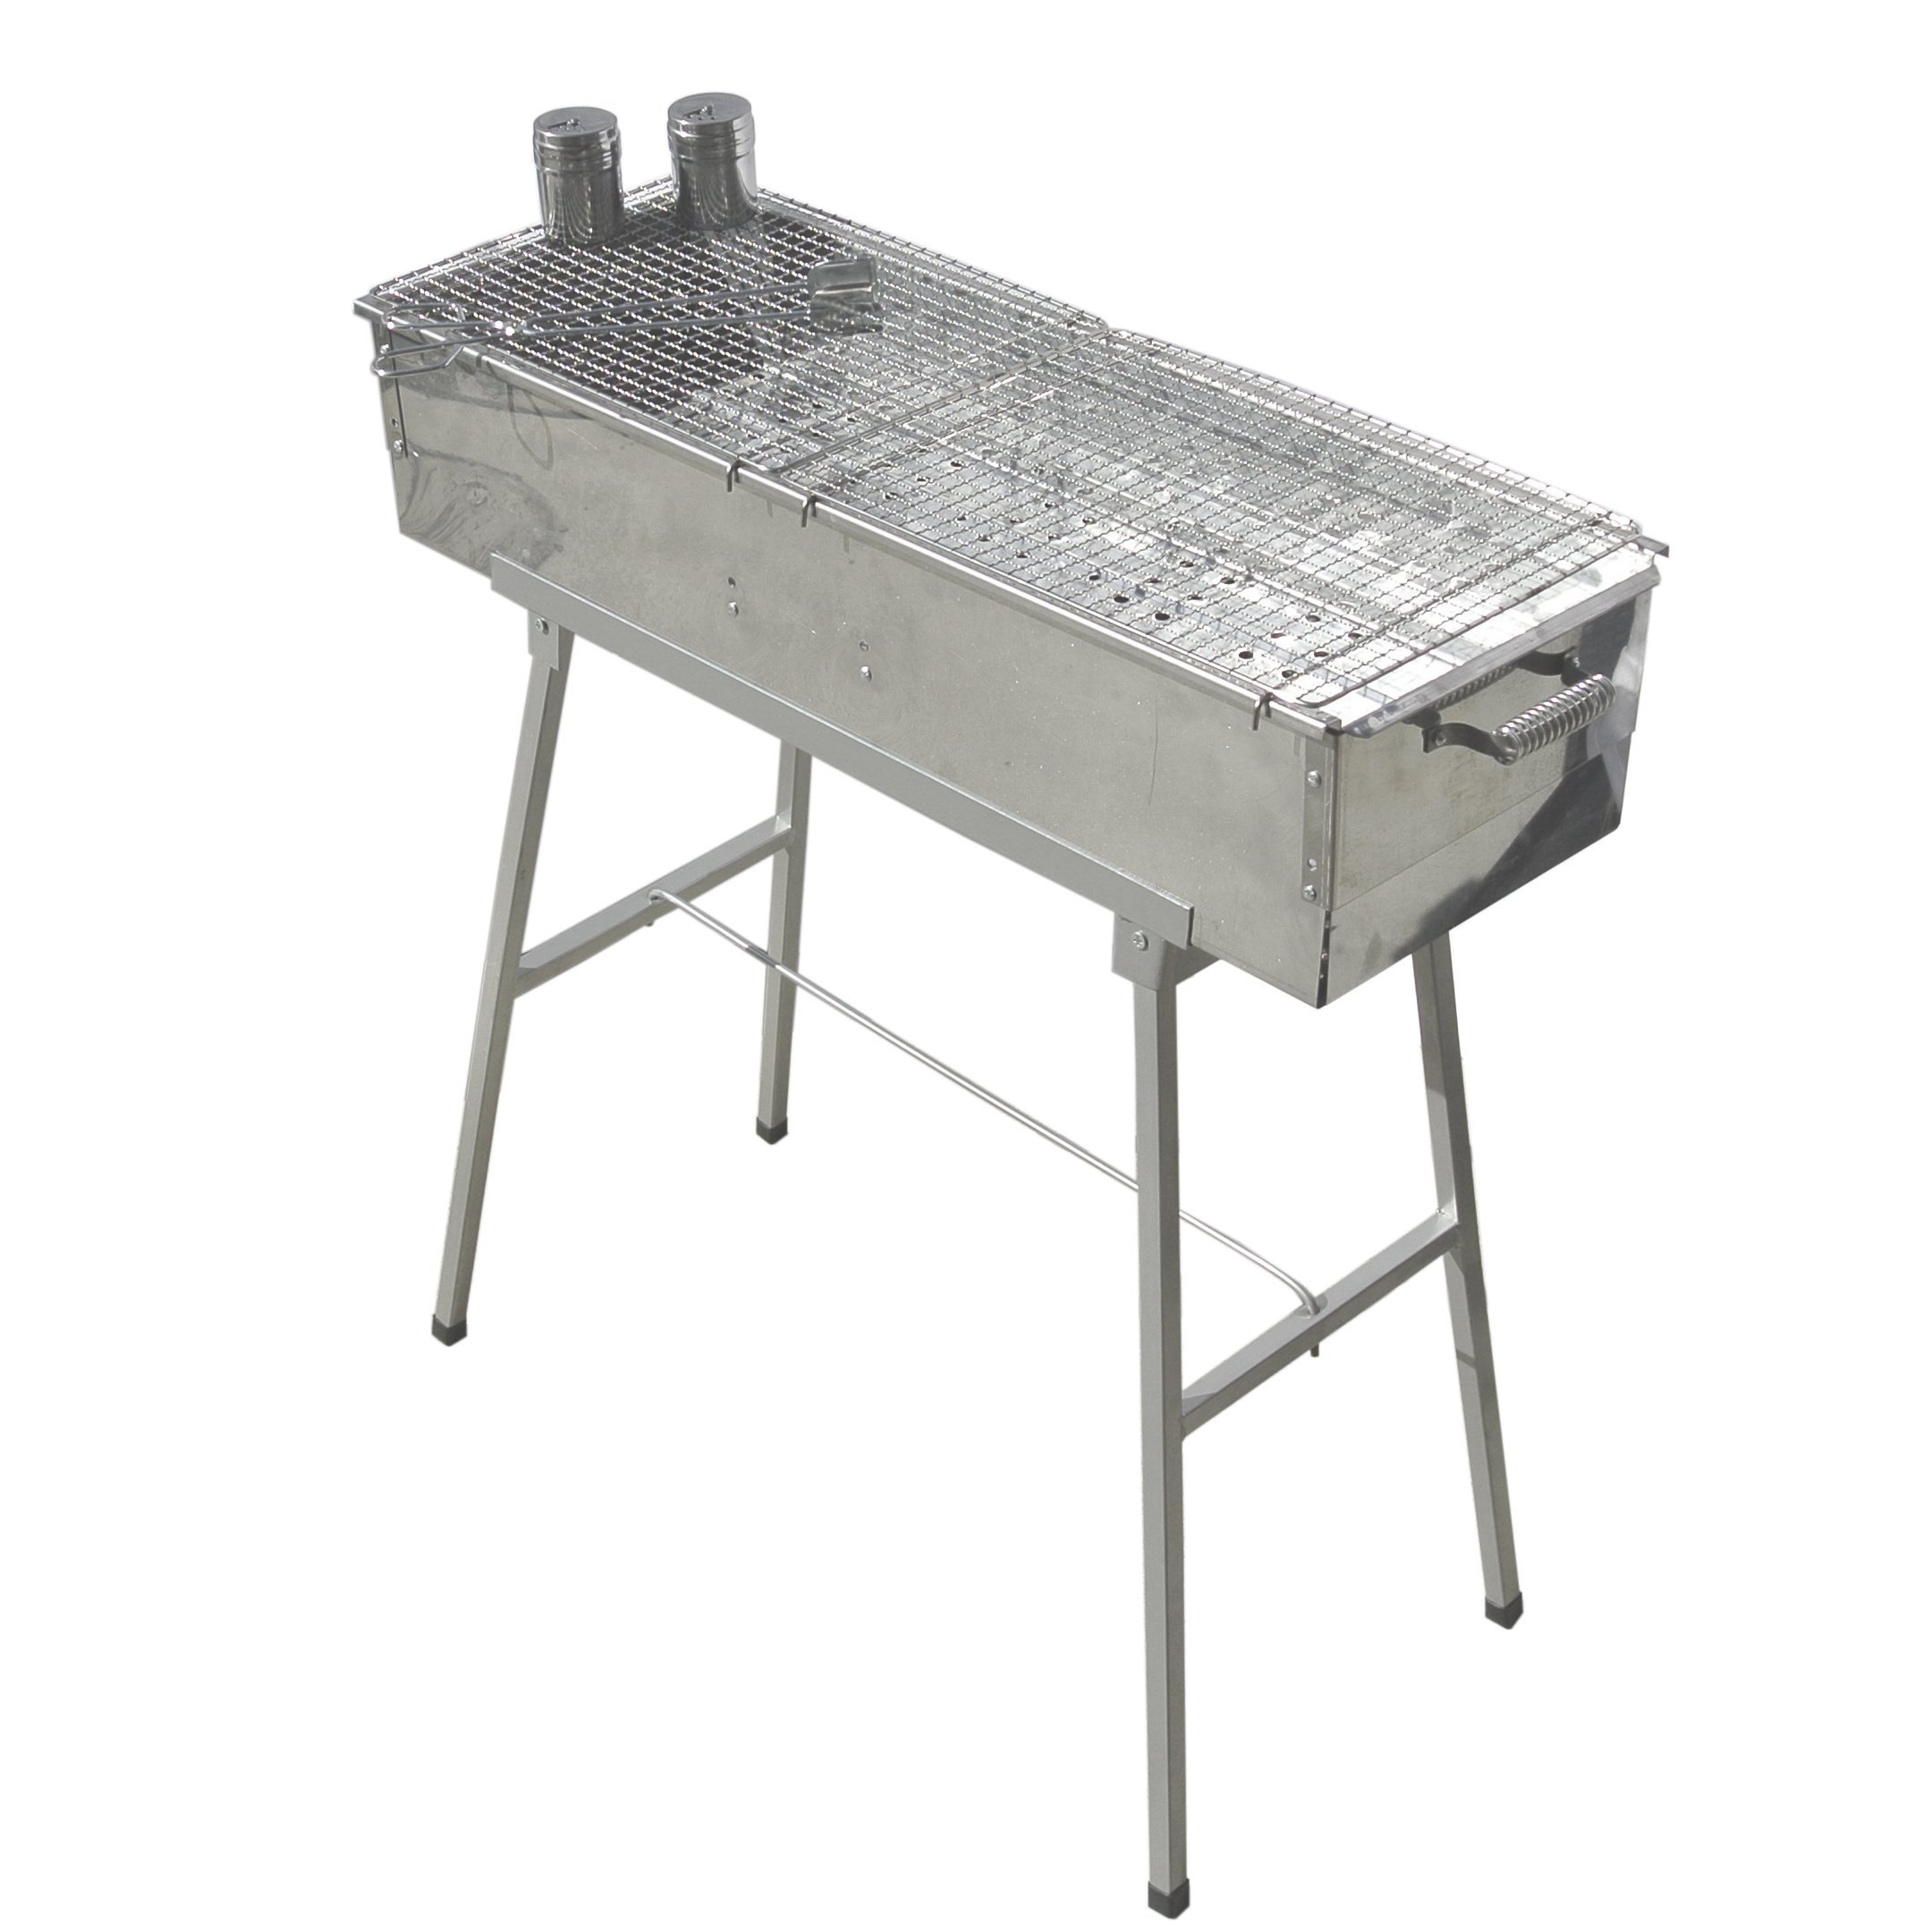 Party Griller 32'' x 11'' Stainless Steel Charcoal Barbecue Grill w/ 2x Stainless Steel Mesh Grate - Portable BBQ Kebab, Satay, Yakitori Grill. Makes Juicy Shish Kebob, Shashlik, Spiedini on the Skewer